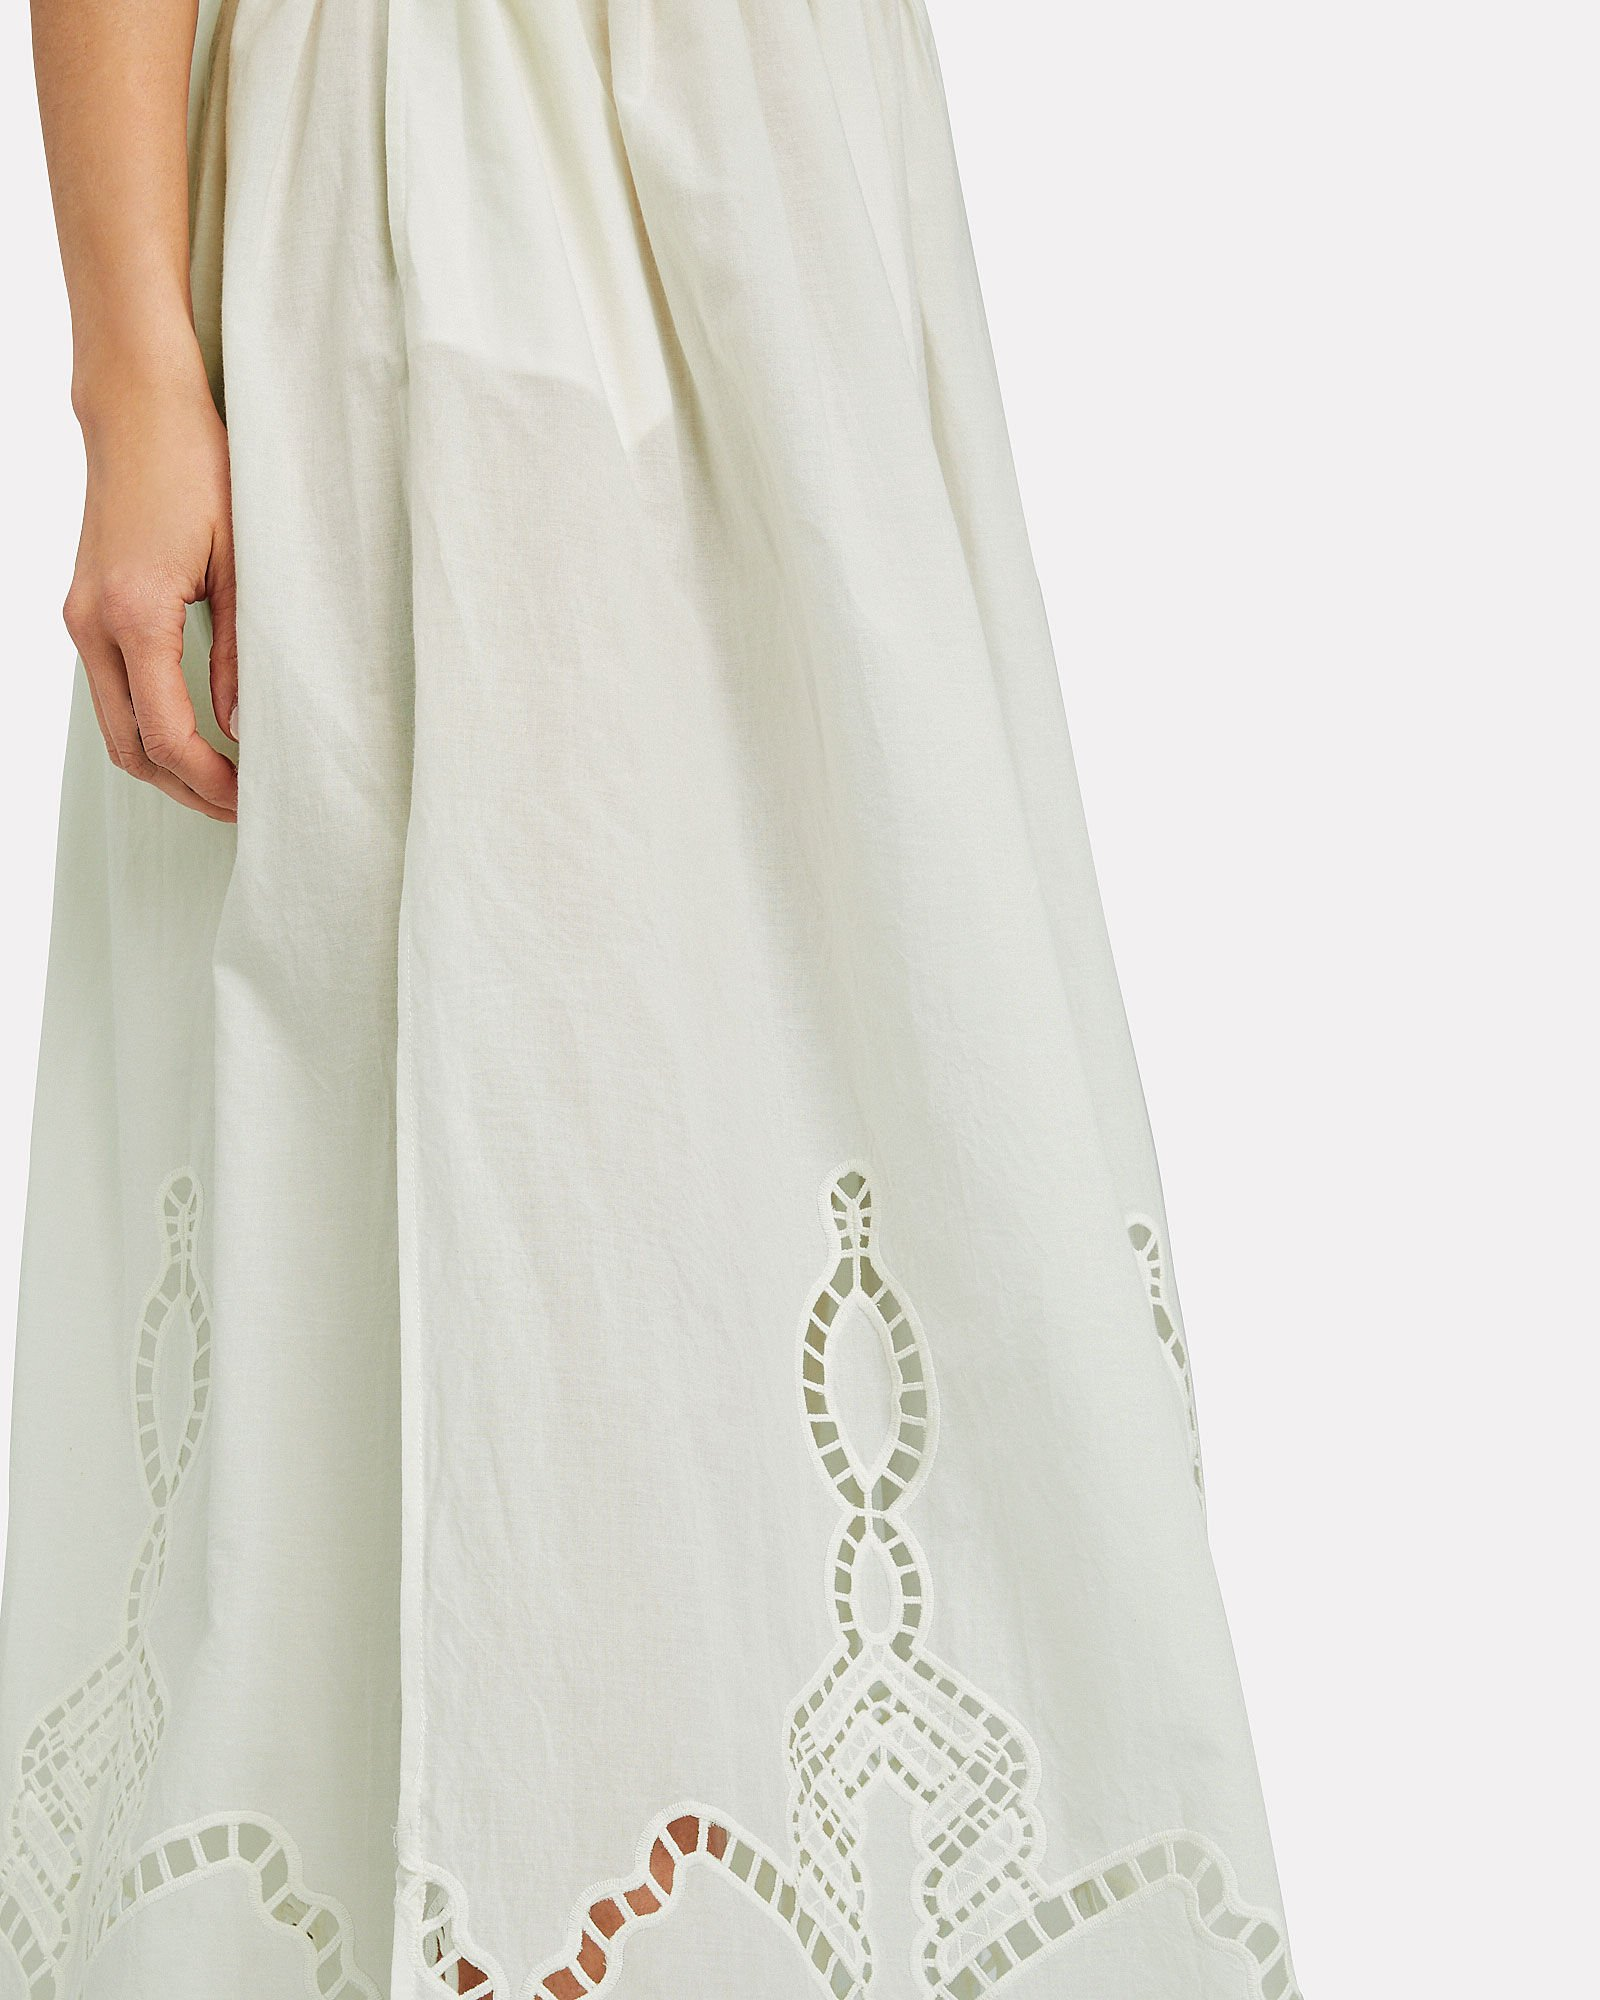 Owen Cotton Midi Skirt, IVORY, hi-res